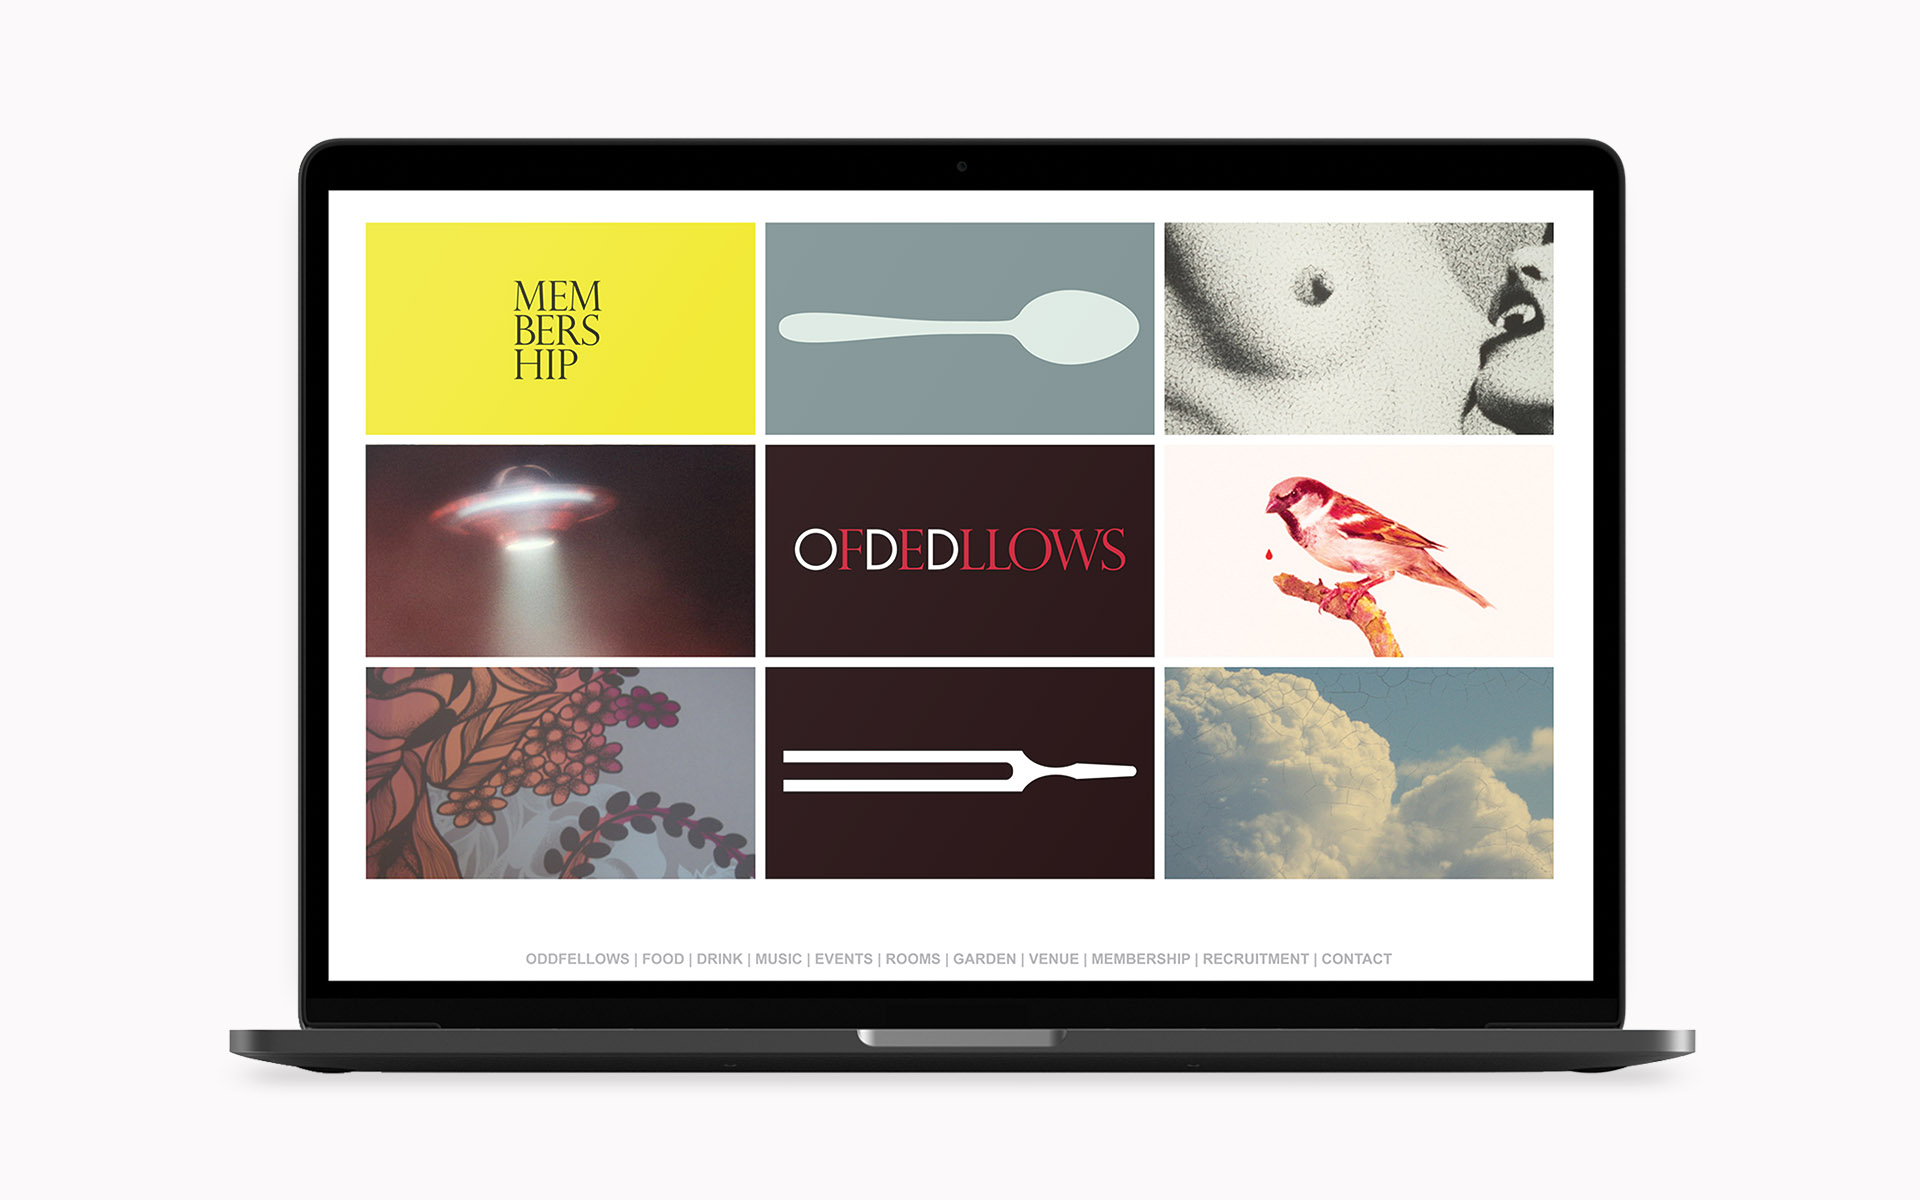 Oddfellows website